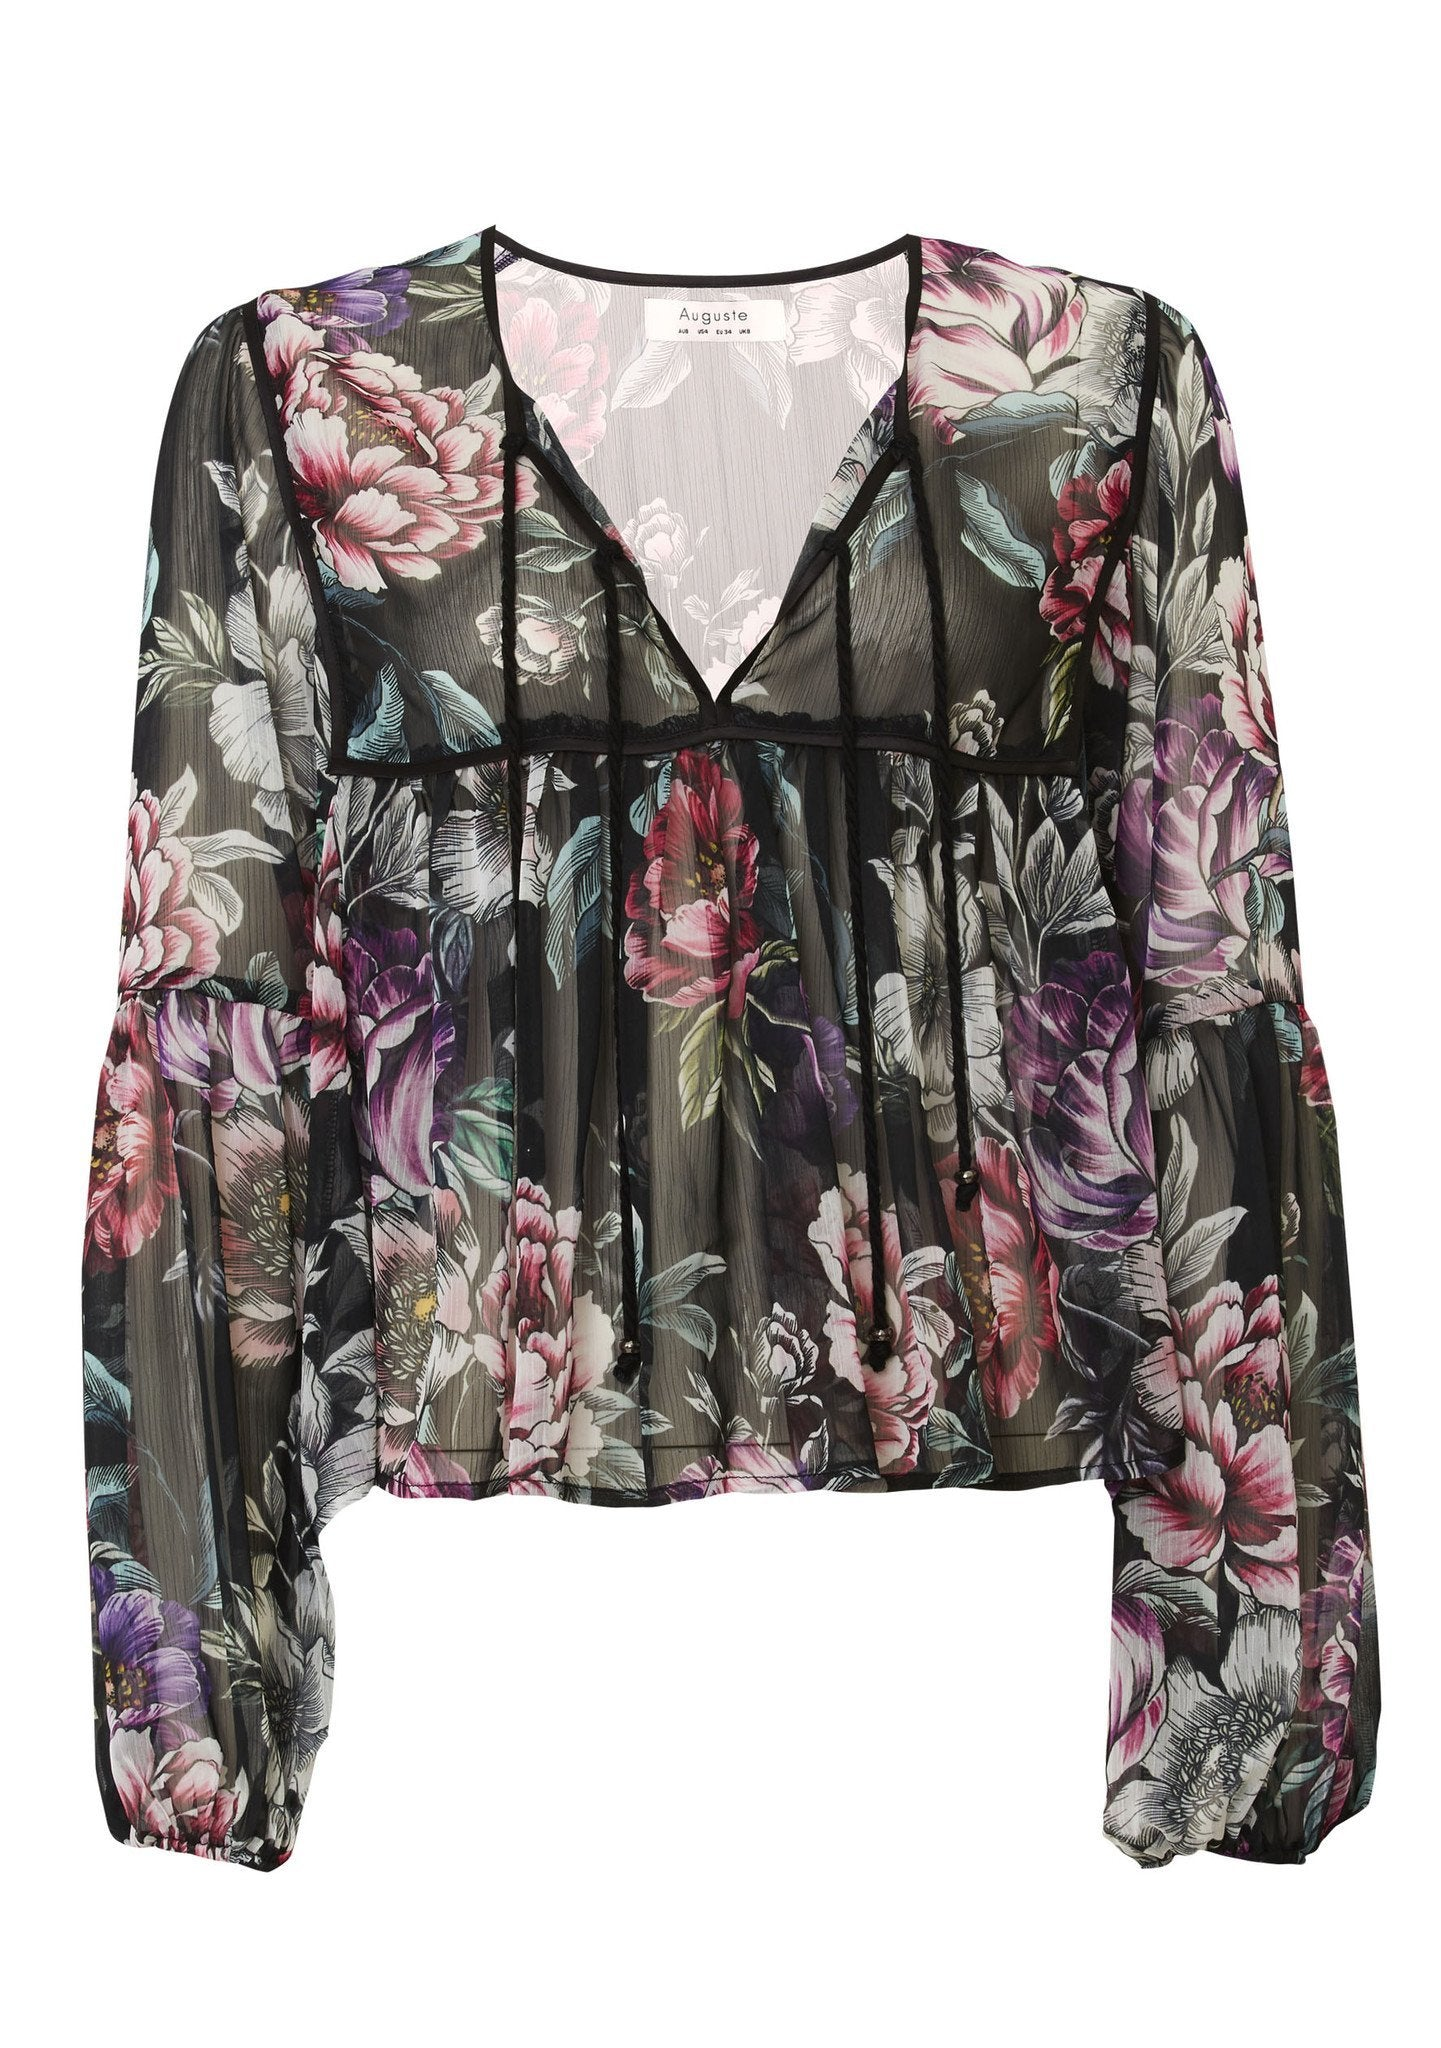 Boho Is Best Sheer Top Hazel Blossom Black